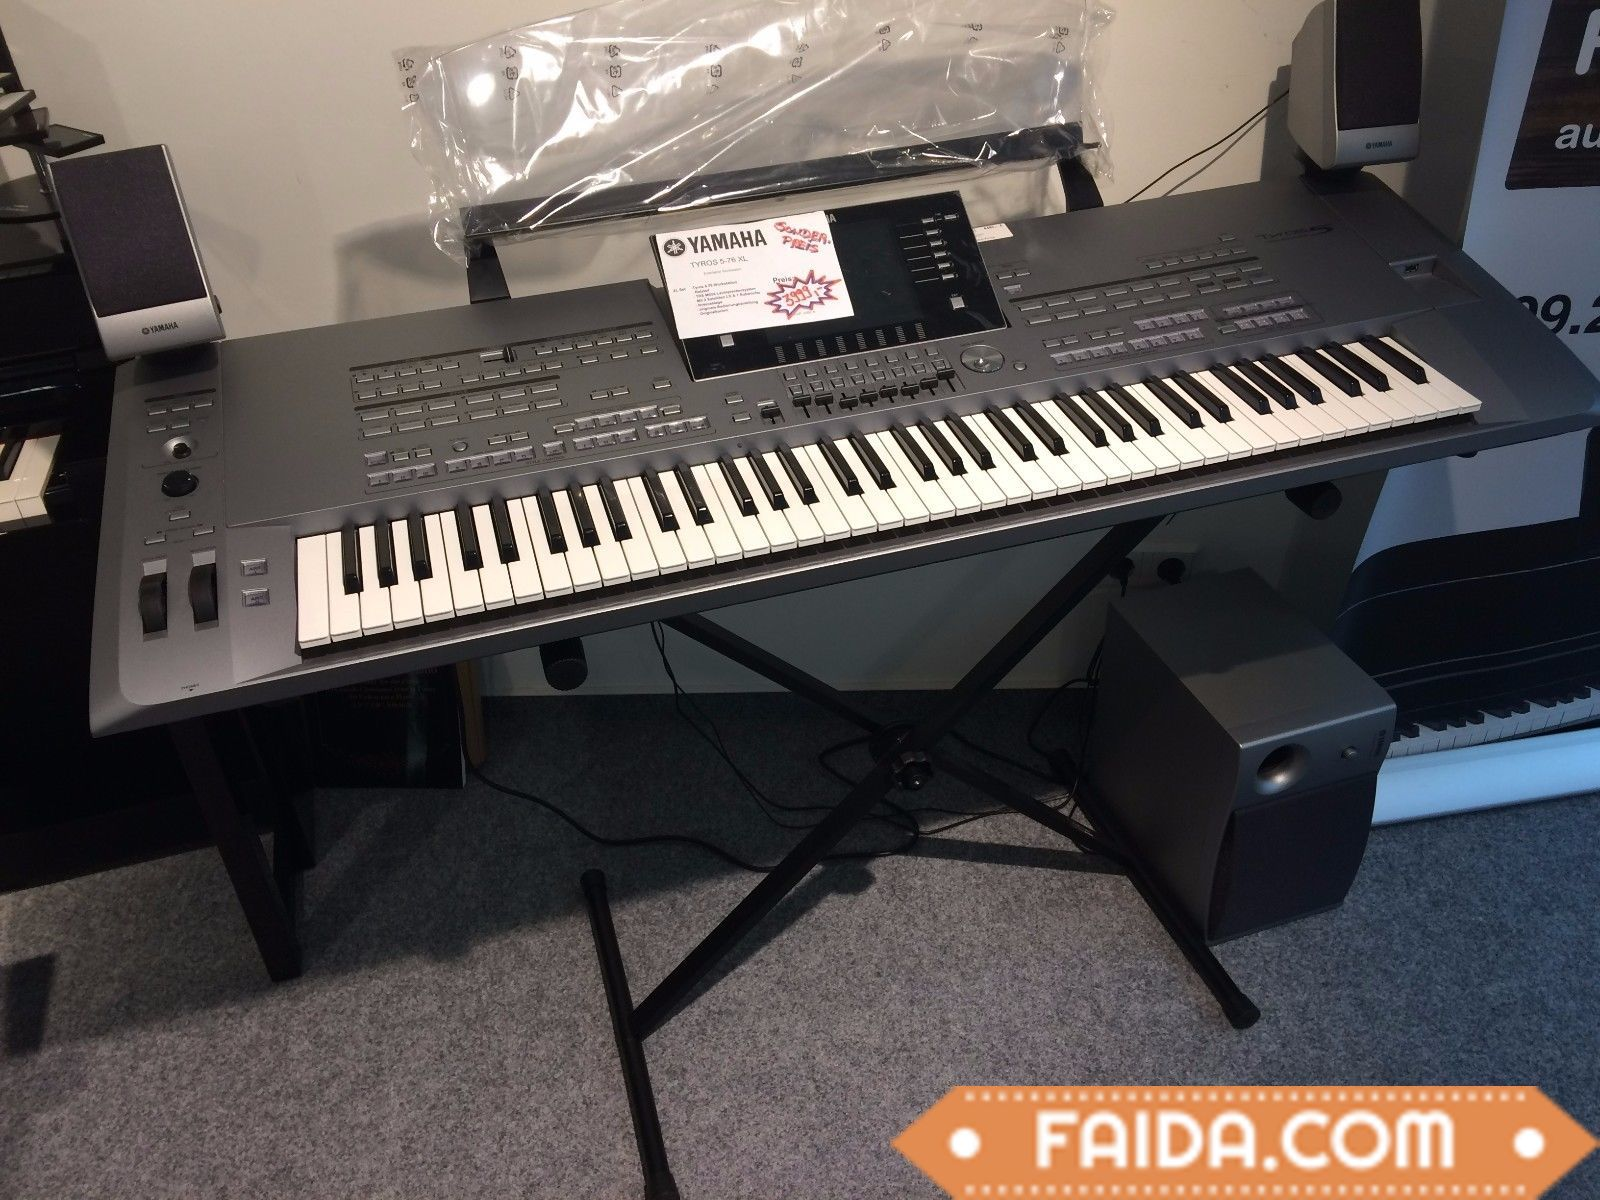 The Yamaha Tyros5-76 Whats app number : +18597770061